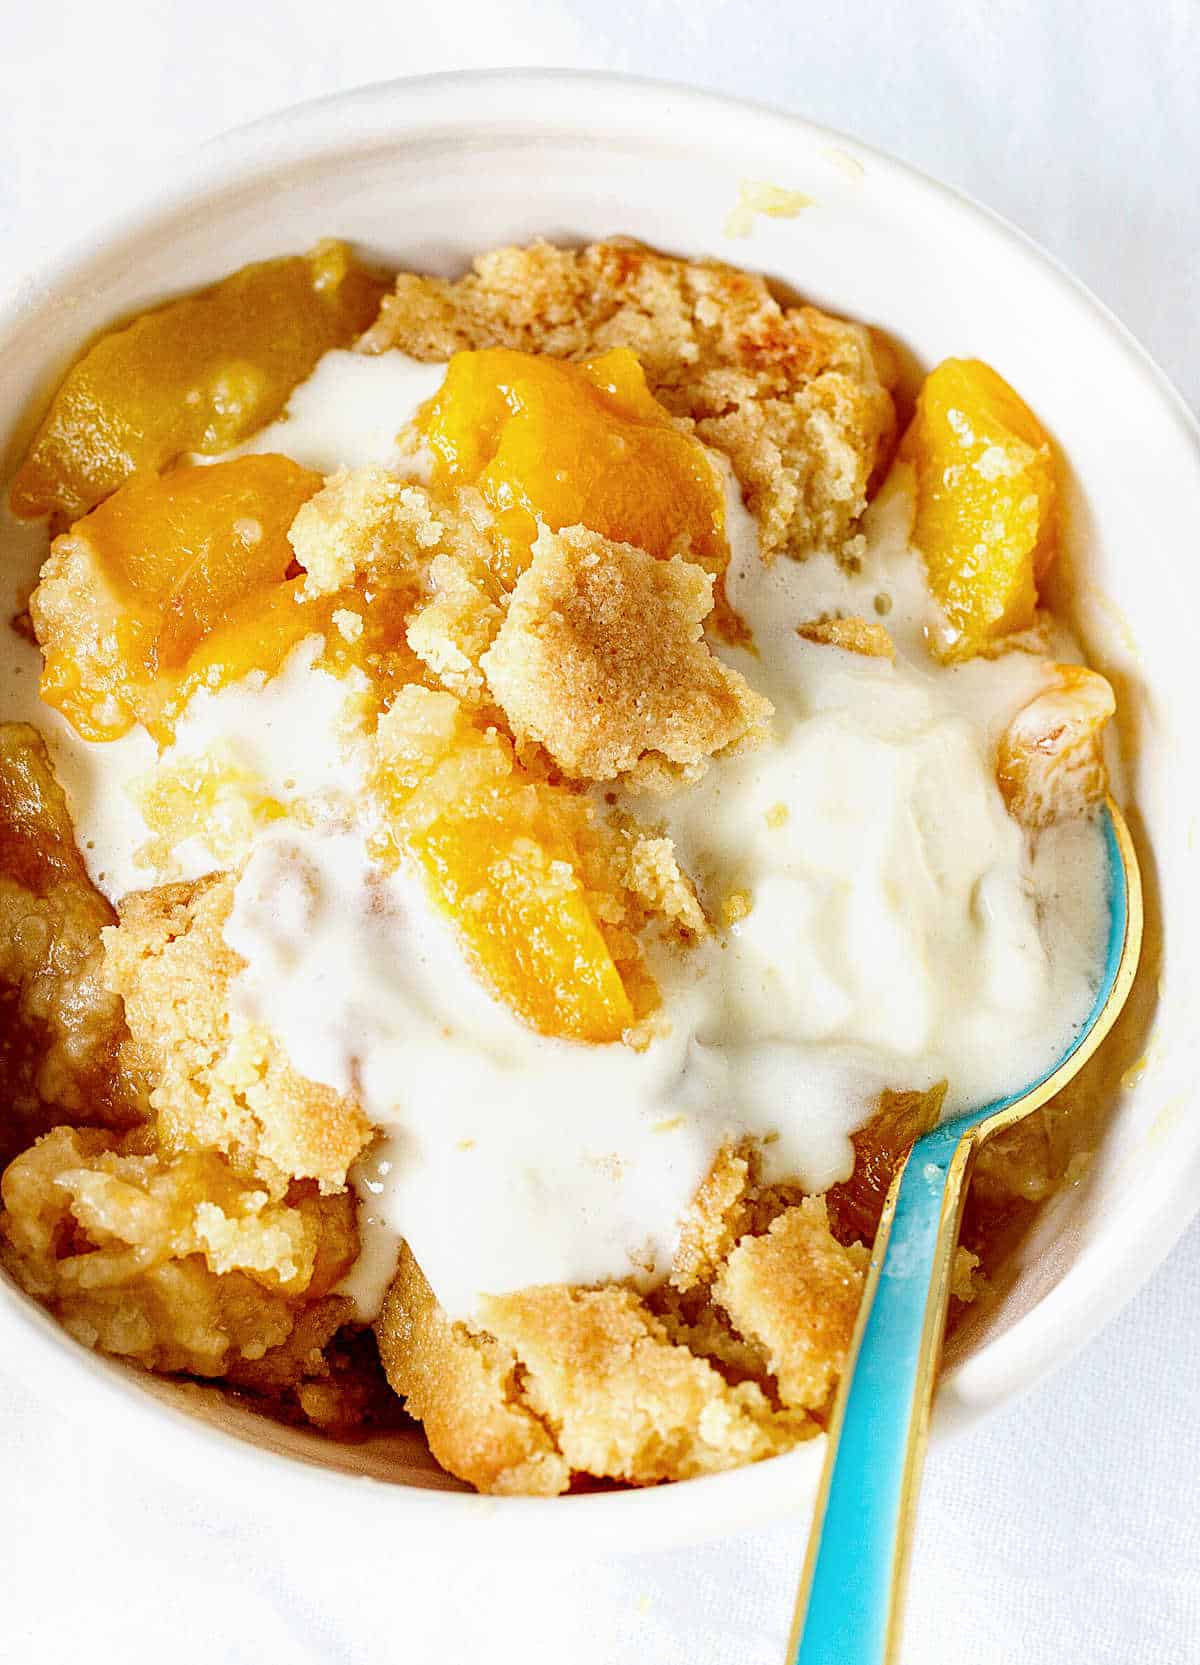 Overview of white bowl with peach dump cake and ice cream, greenish spoon